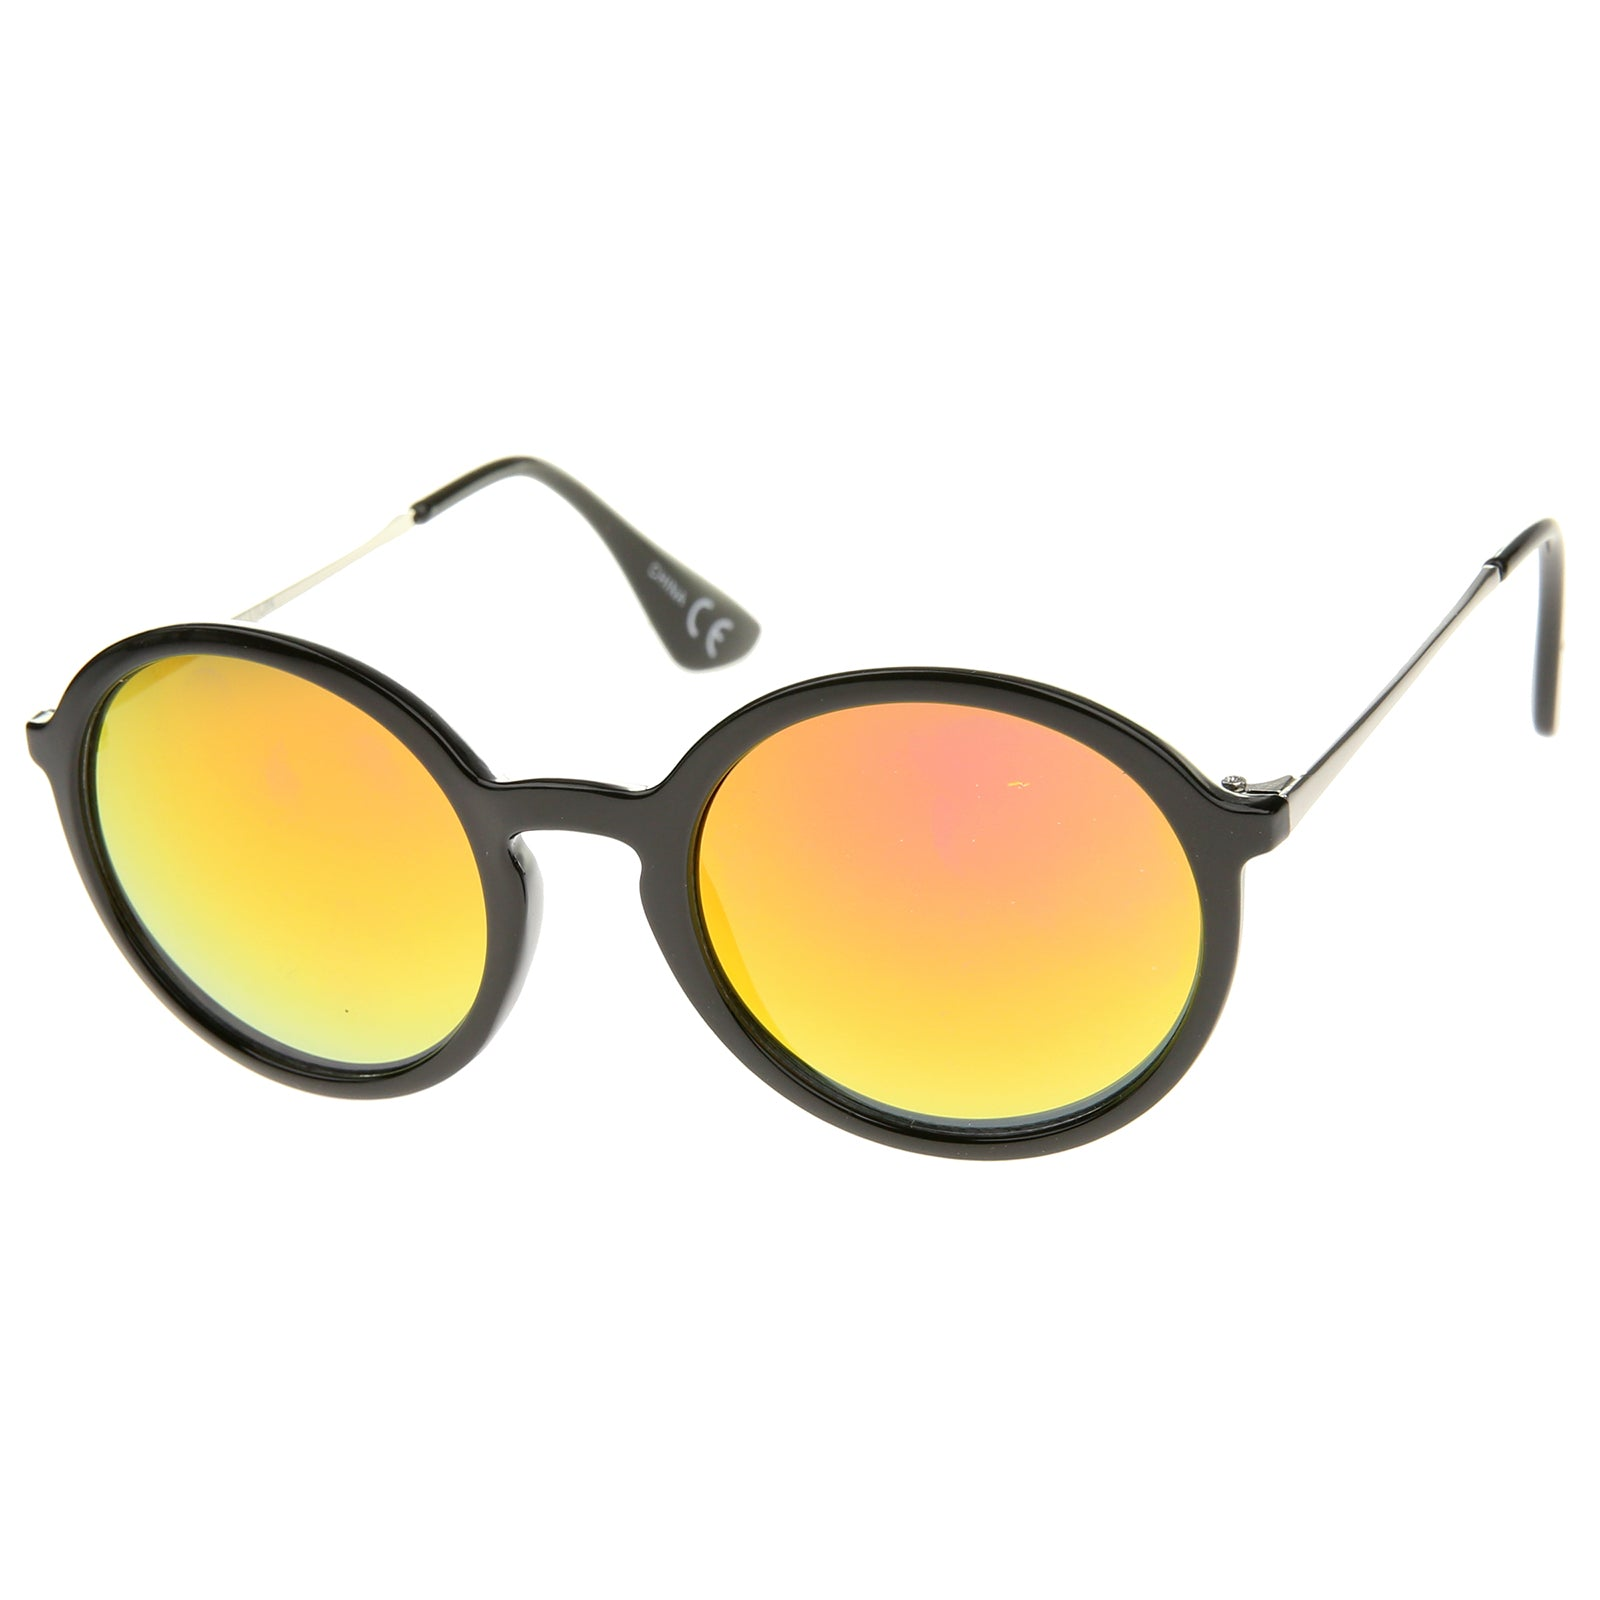 Mid Sized Modern Metal Temple Mirror Lens Round Sunglasses 49mm - sunglass.la - 22